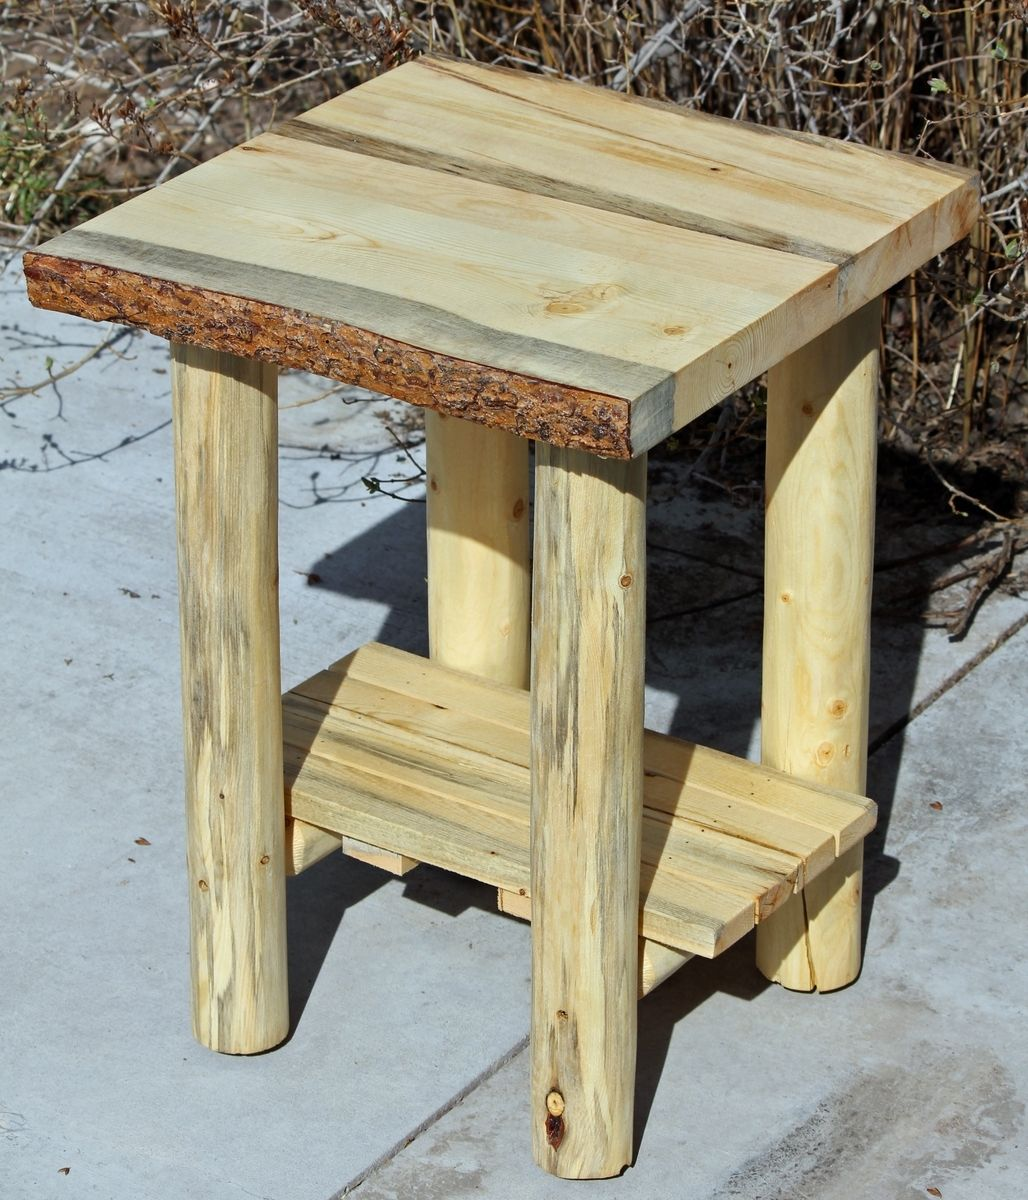 hand made rustic log end tables nightstands and coffee from logs the wood custommade slim grey bedside table riverside craftsman home collection diy console with pipe legs vintage